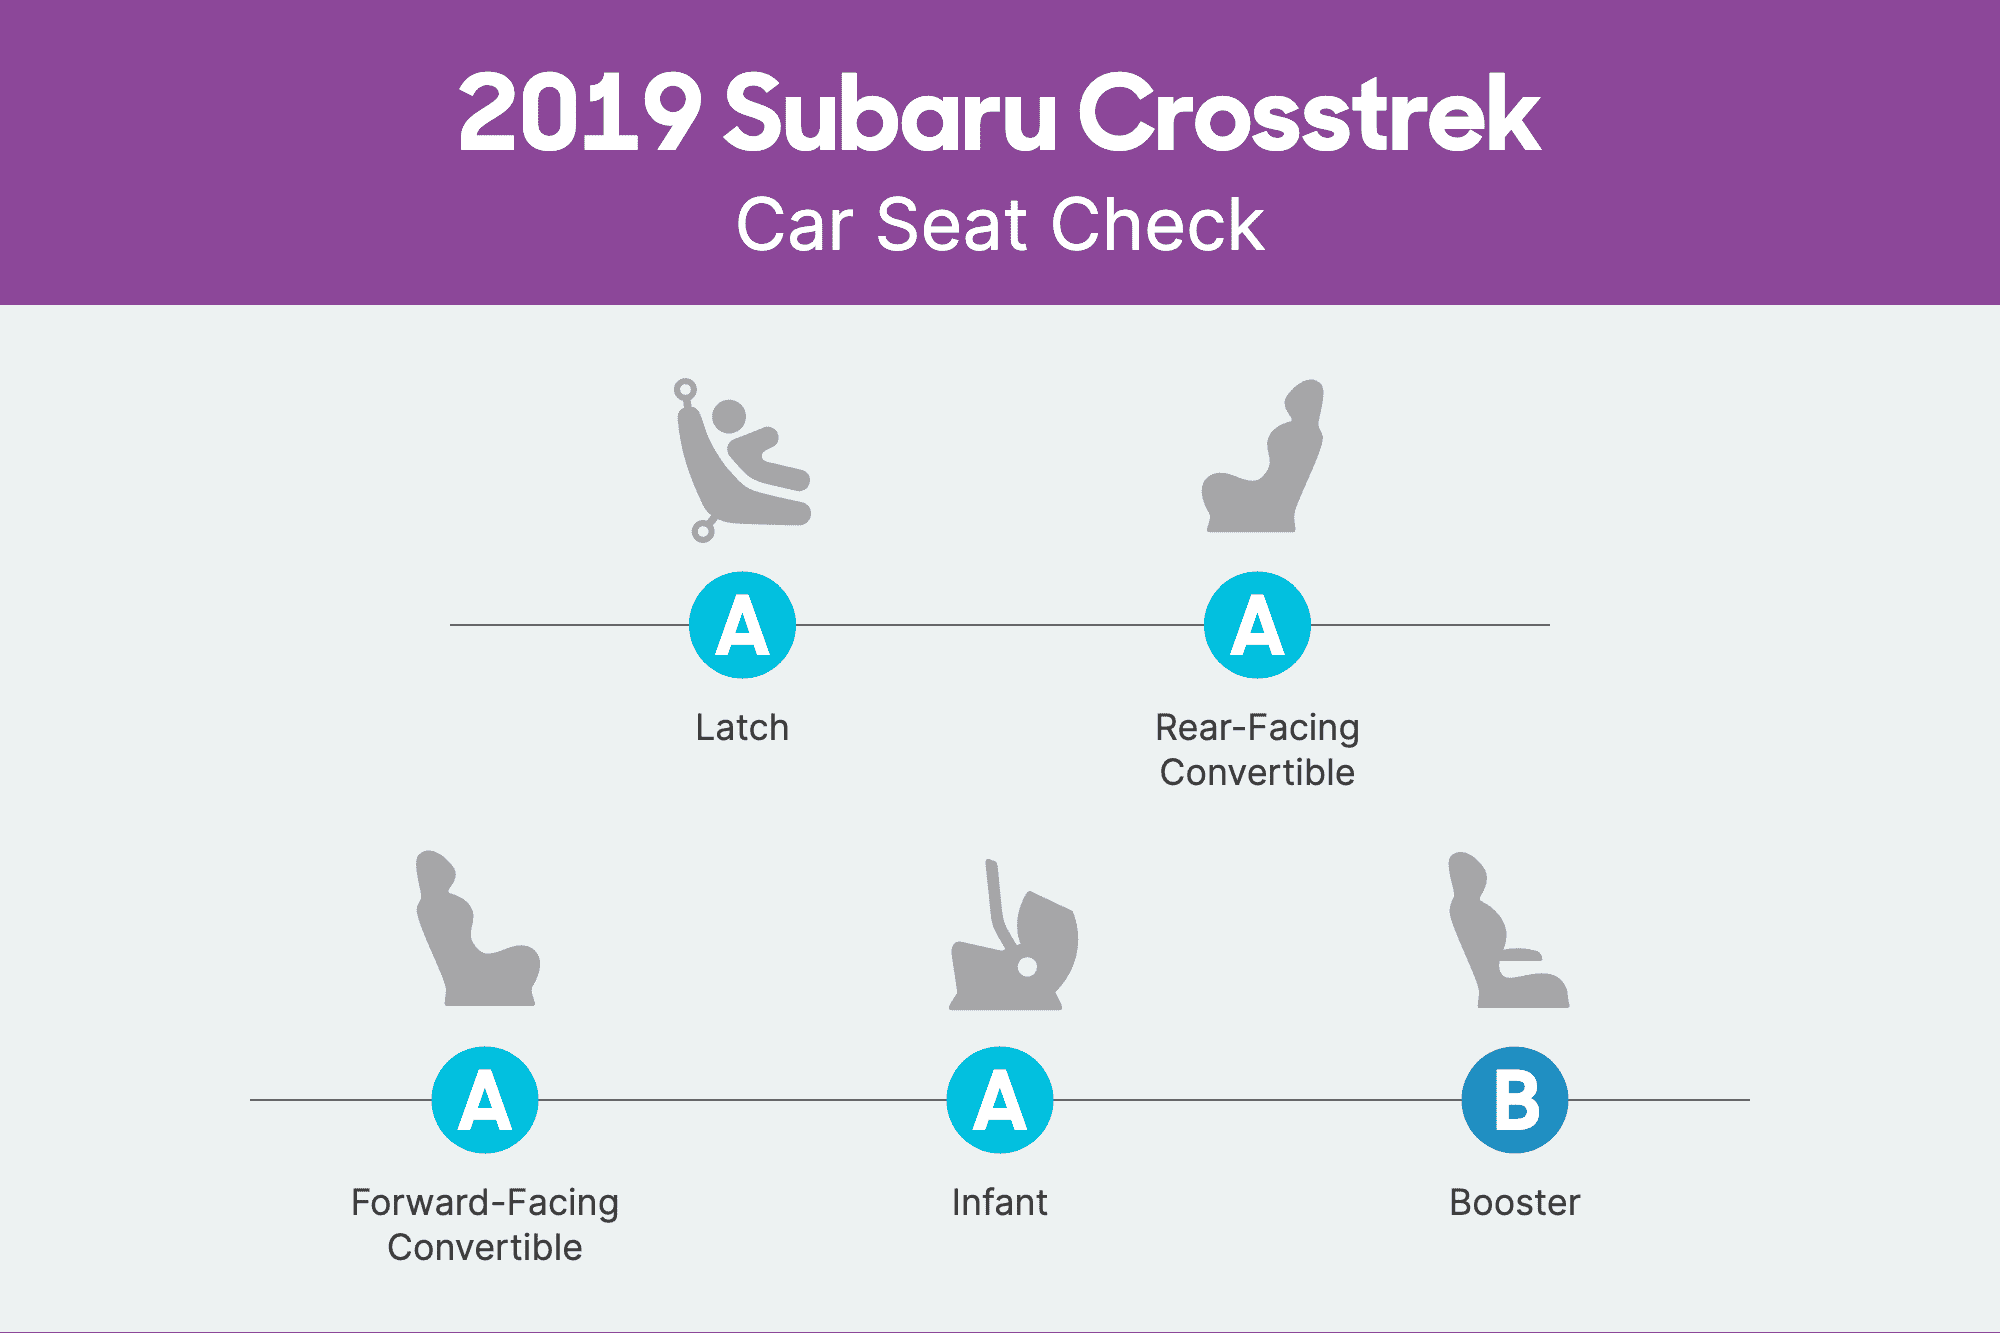 How Do Car Seats Fit in a 2019 Subaru Crosstrek?